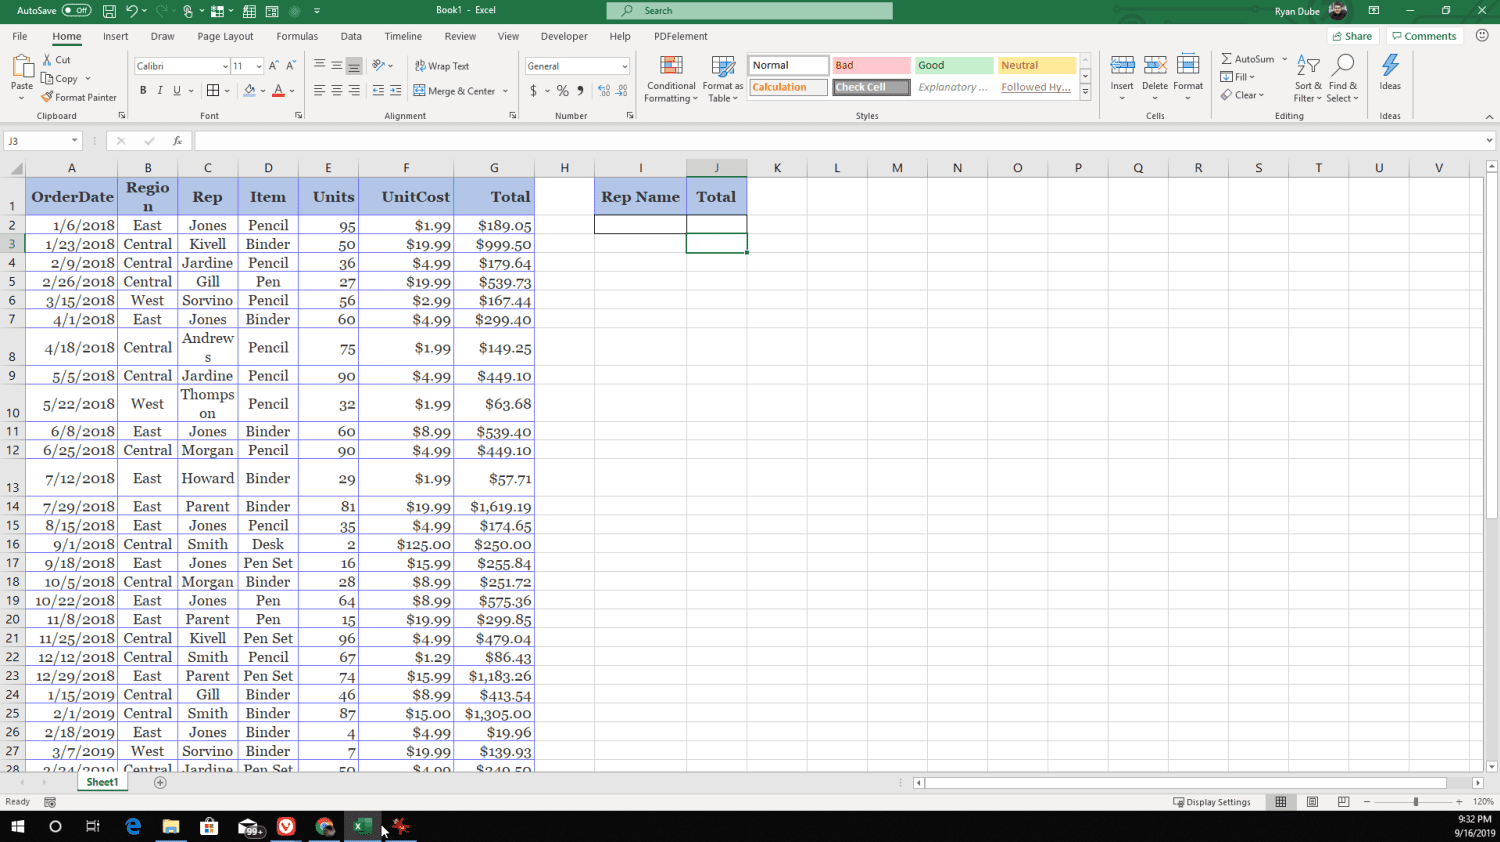 How to Use the XLOOKUP Function in Excel